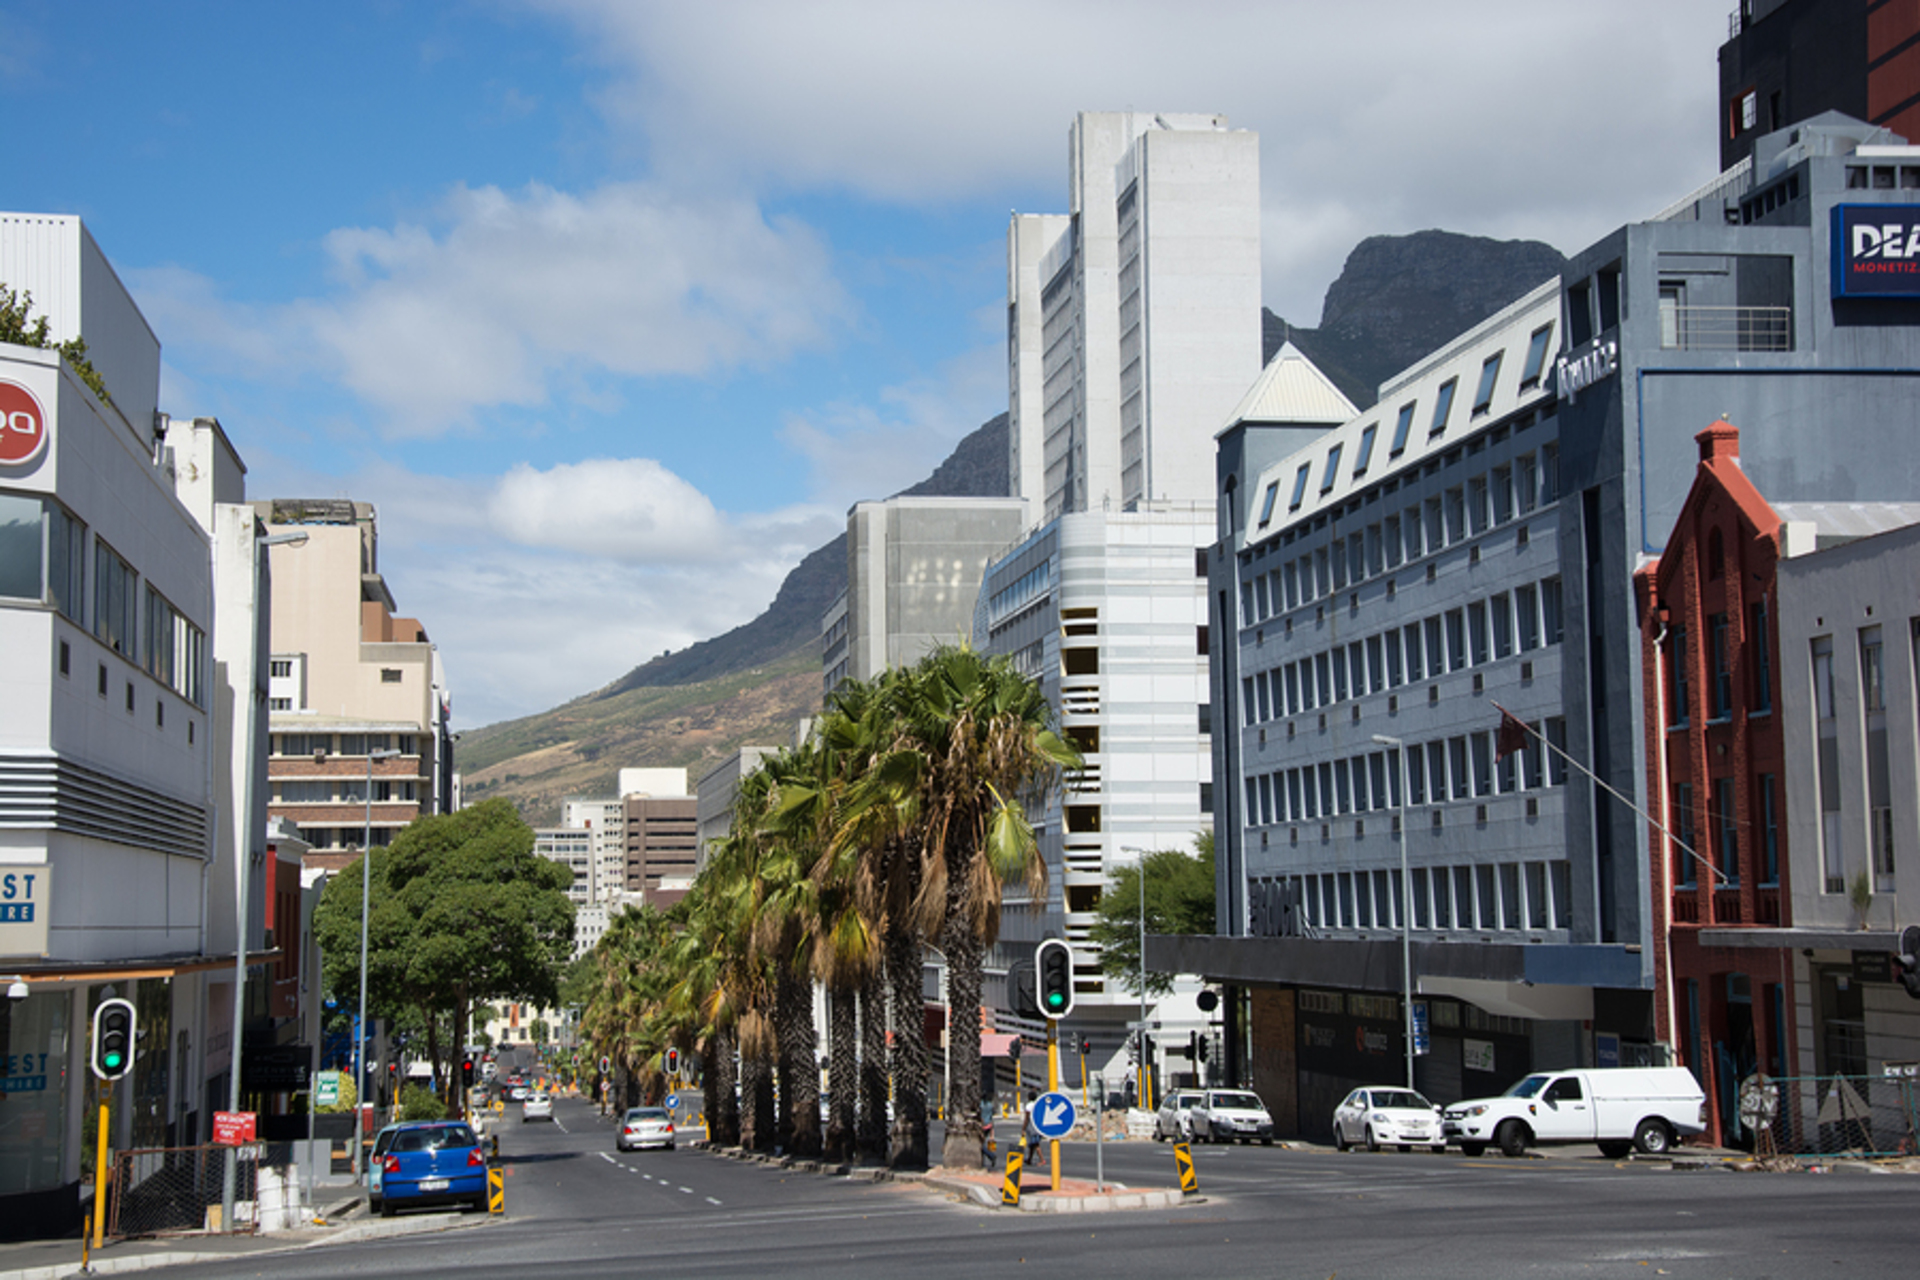 Tips for shooting in Cape Town